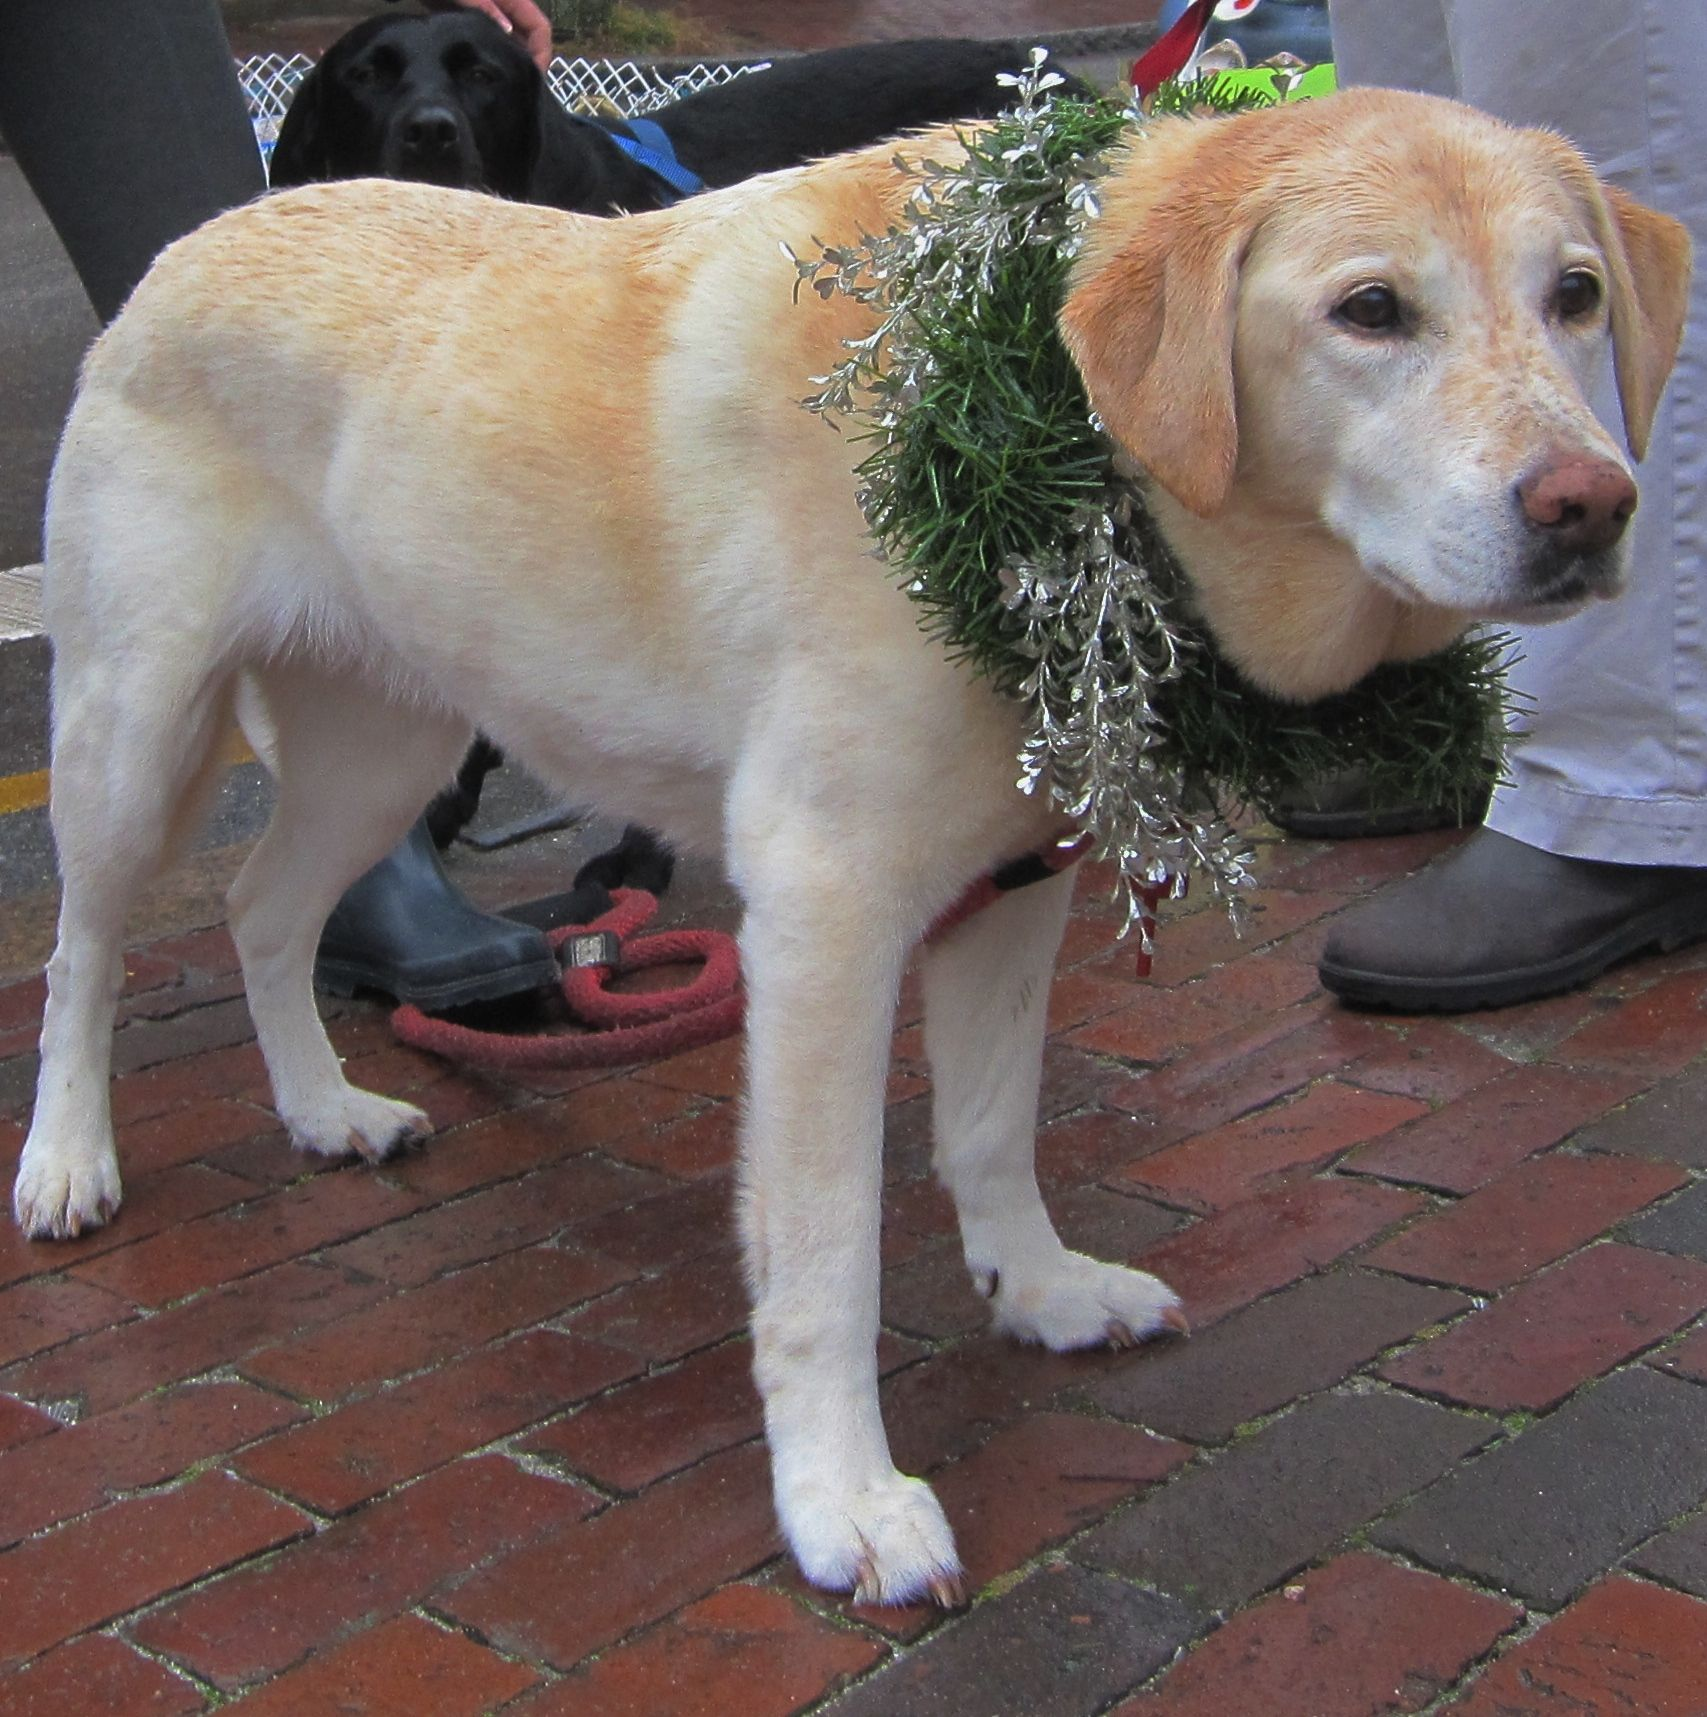 Pet Friendly Cape Cod Vacation Rentals: What An Adorable Christmas Stroll Pup!